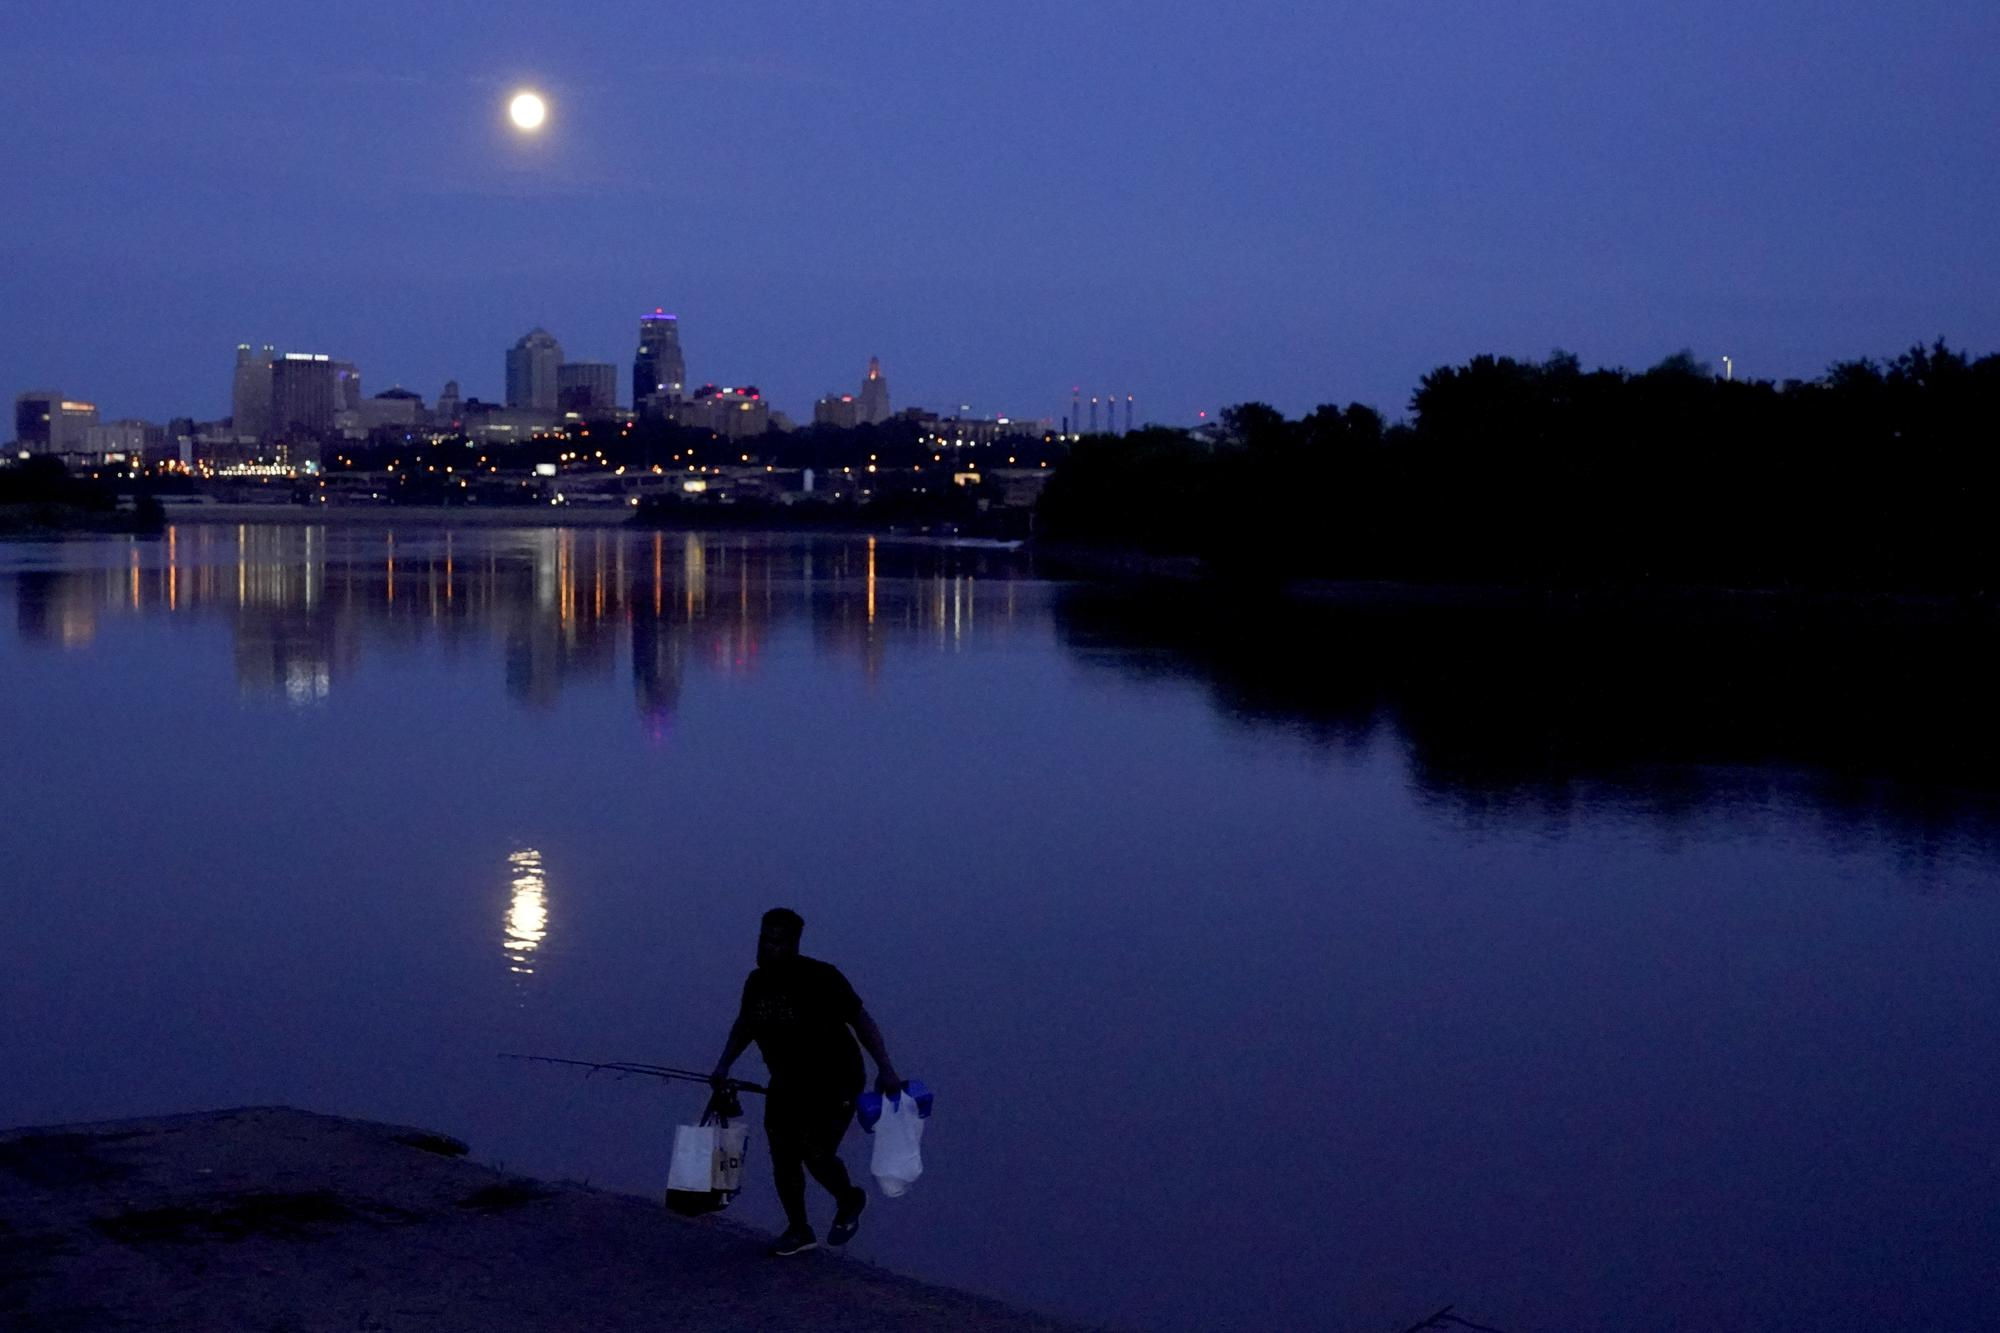 A man leaves after fishing in the Missouri River as the nearly full moon rises beyond the downtown skyline, late Tuesday, May 25, 2021, in Kansas City, Mo. (AP Photo/Charlie Riedel)